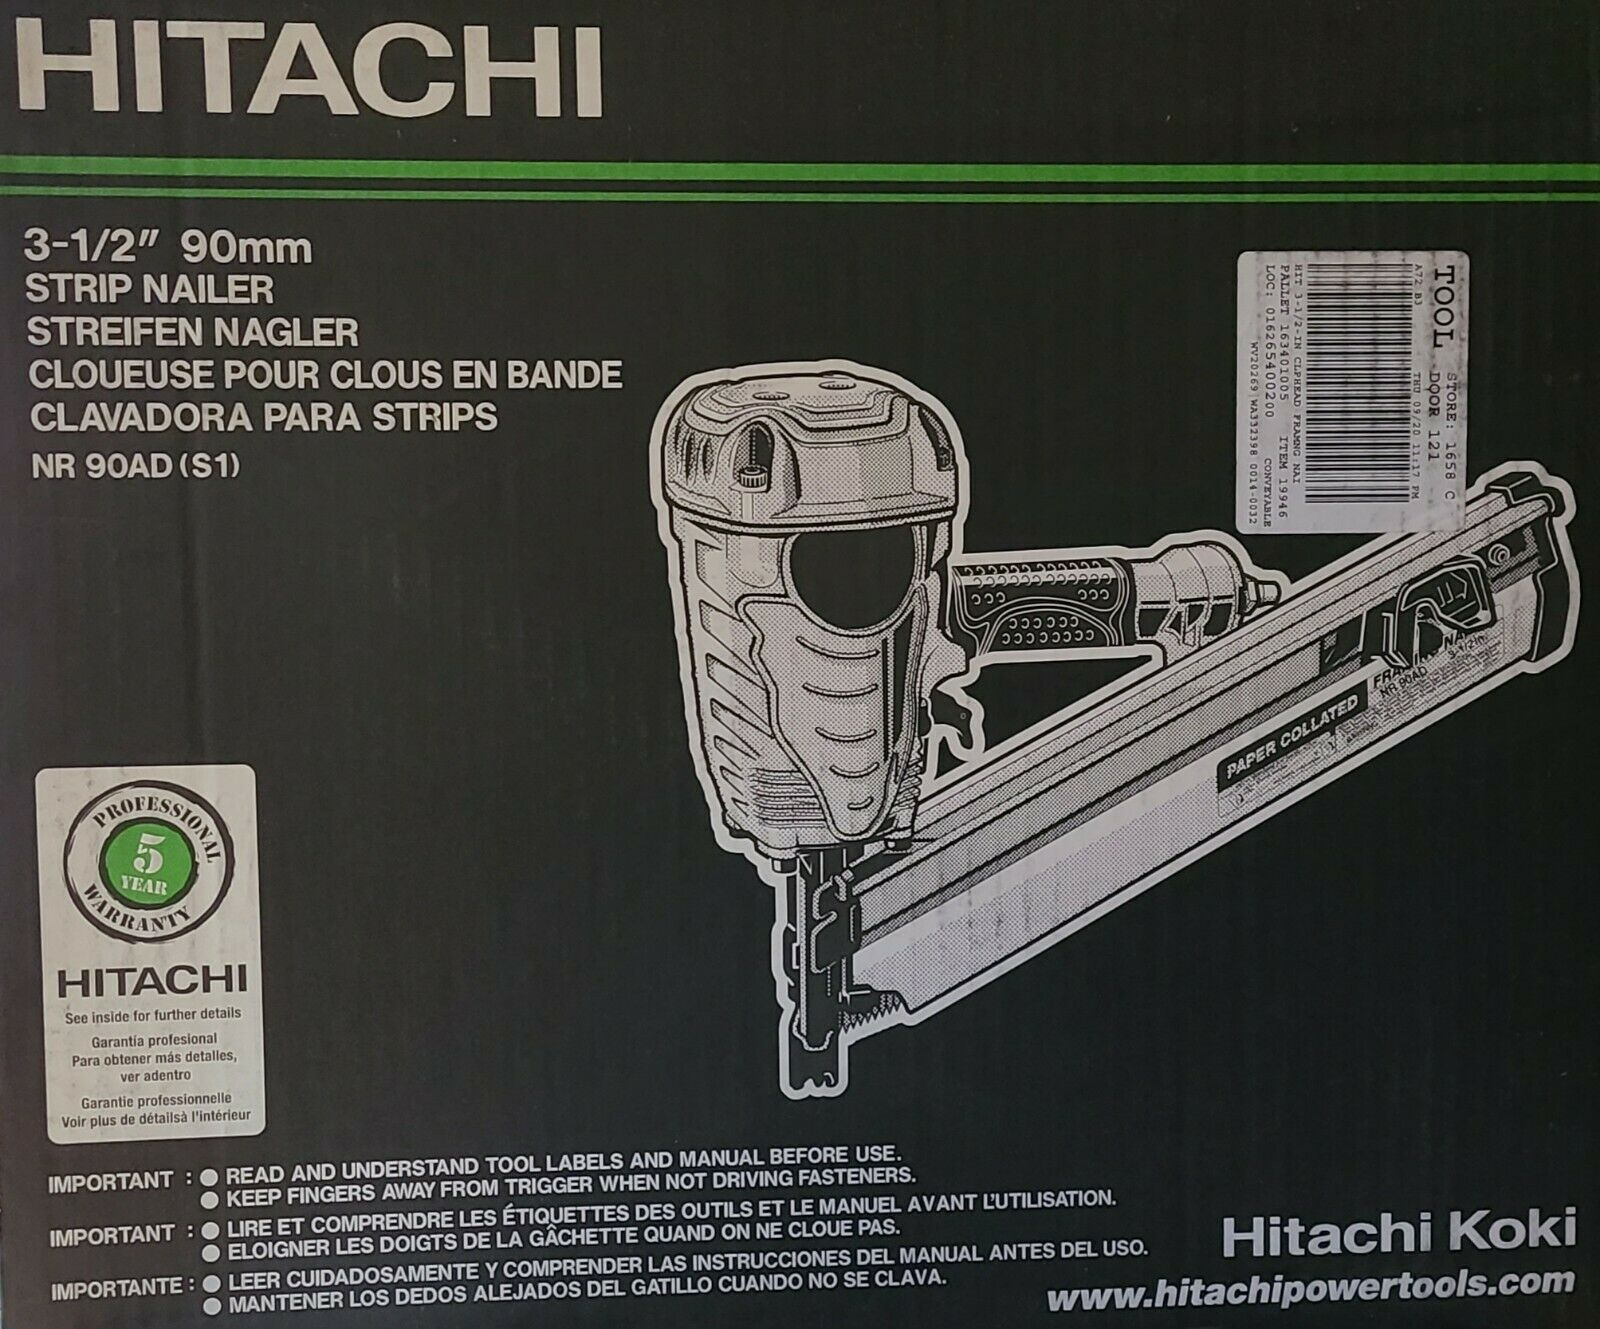 Hitachi 3-1/2 Framing Strip Naile 90mm, Pneumatic  NR90AD(S1), New. Available Now for 173.33